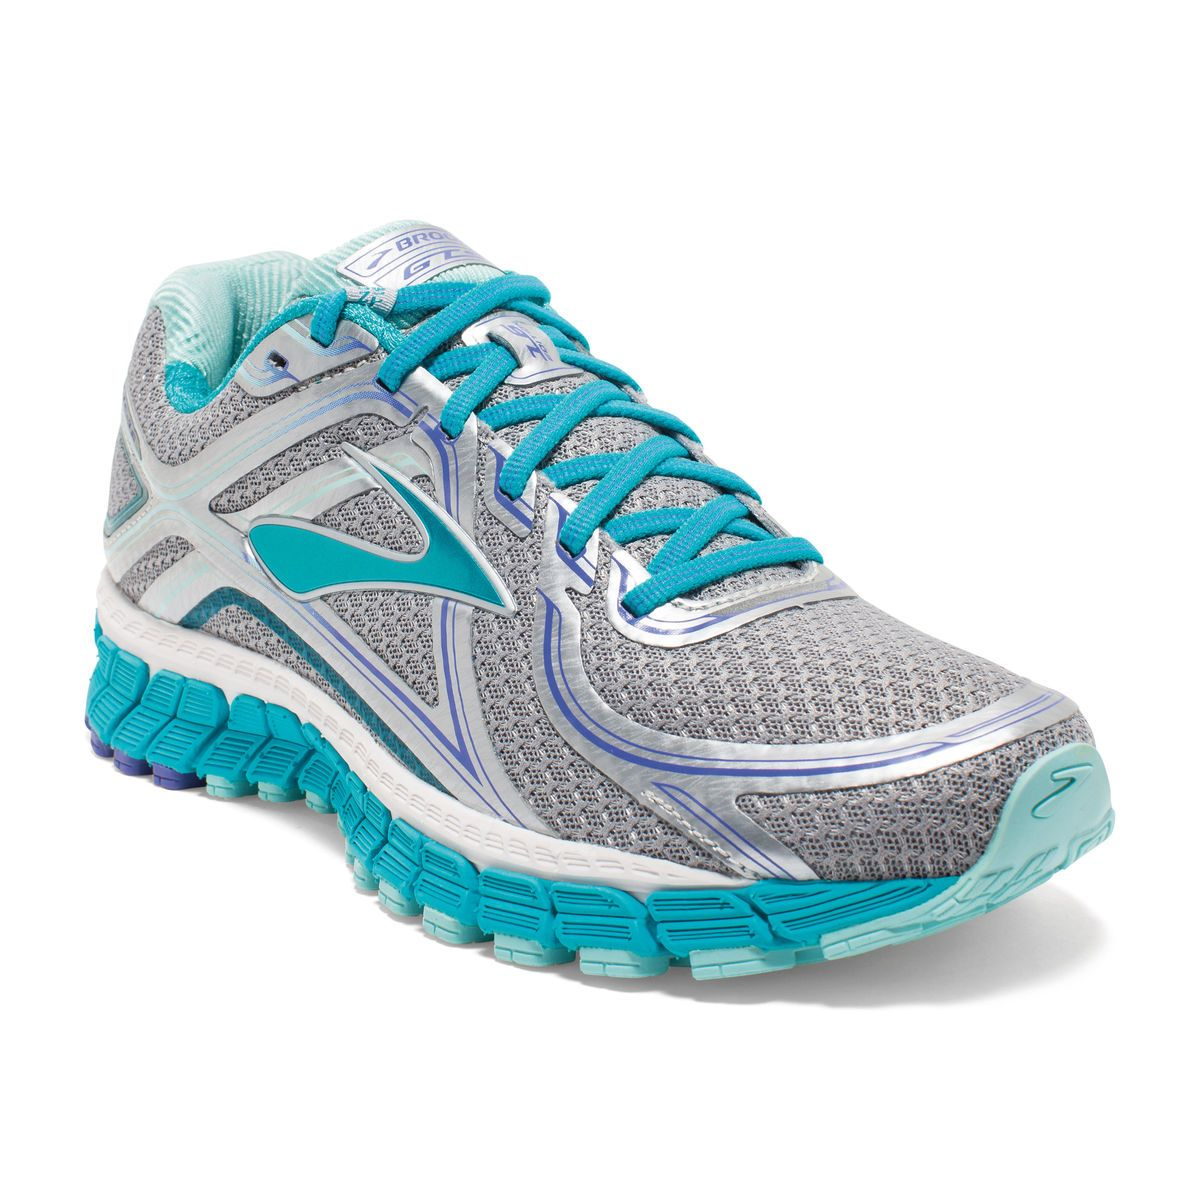 5997024373ecd Brooks Women s Adrenaline GTS 16 Running Shoes - LOVE this new color ...